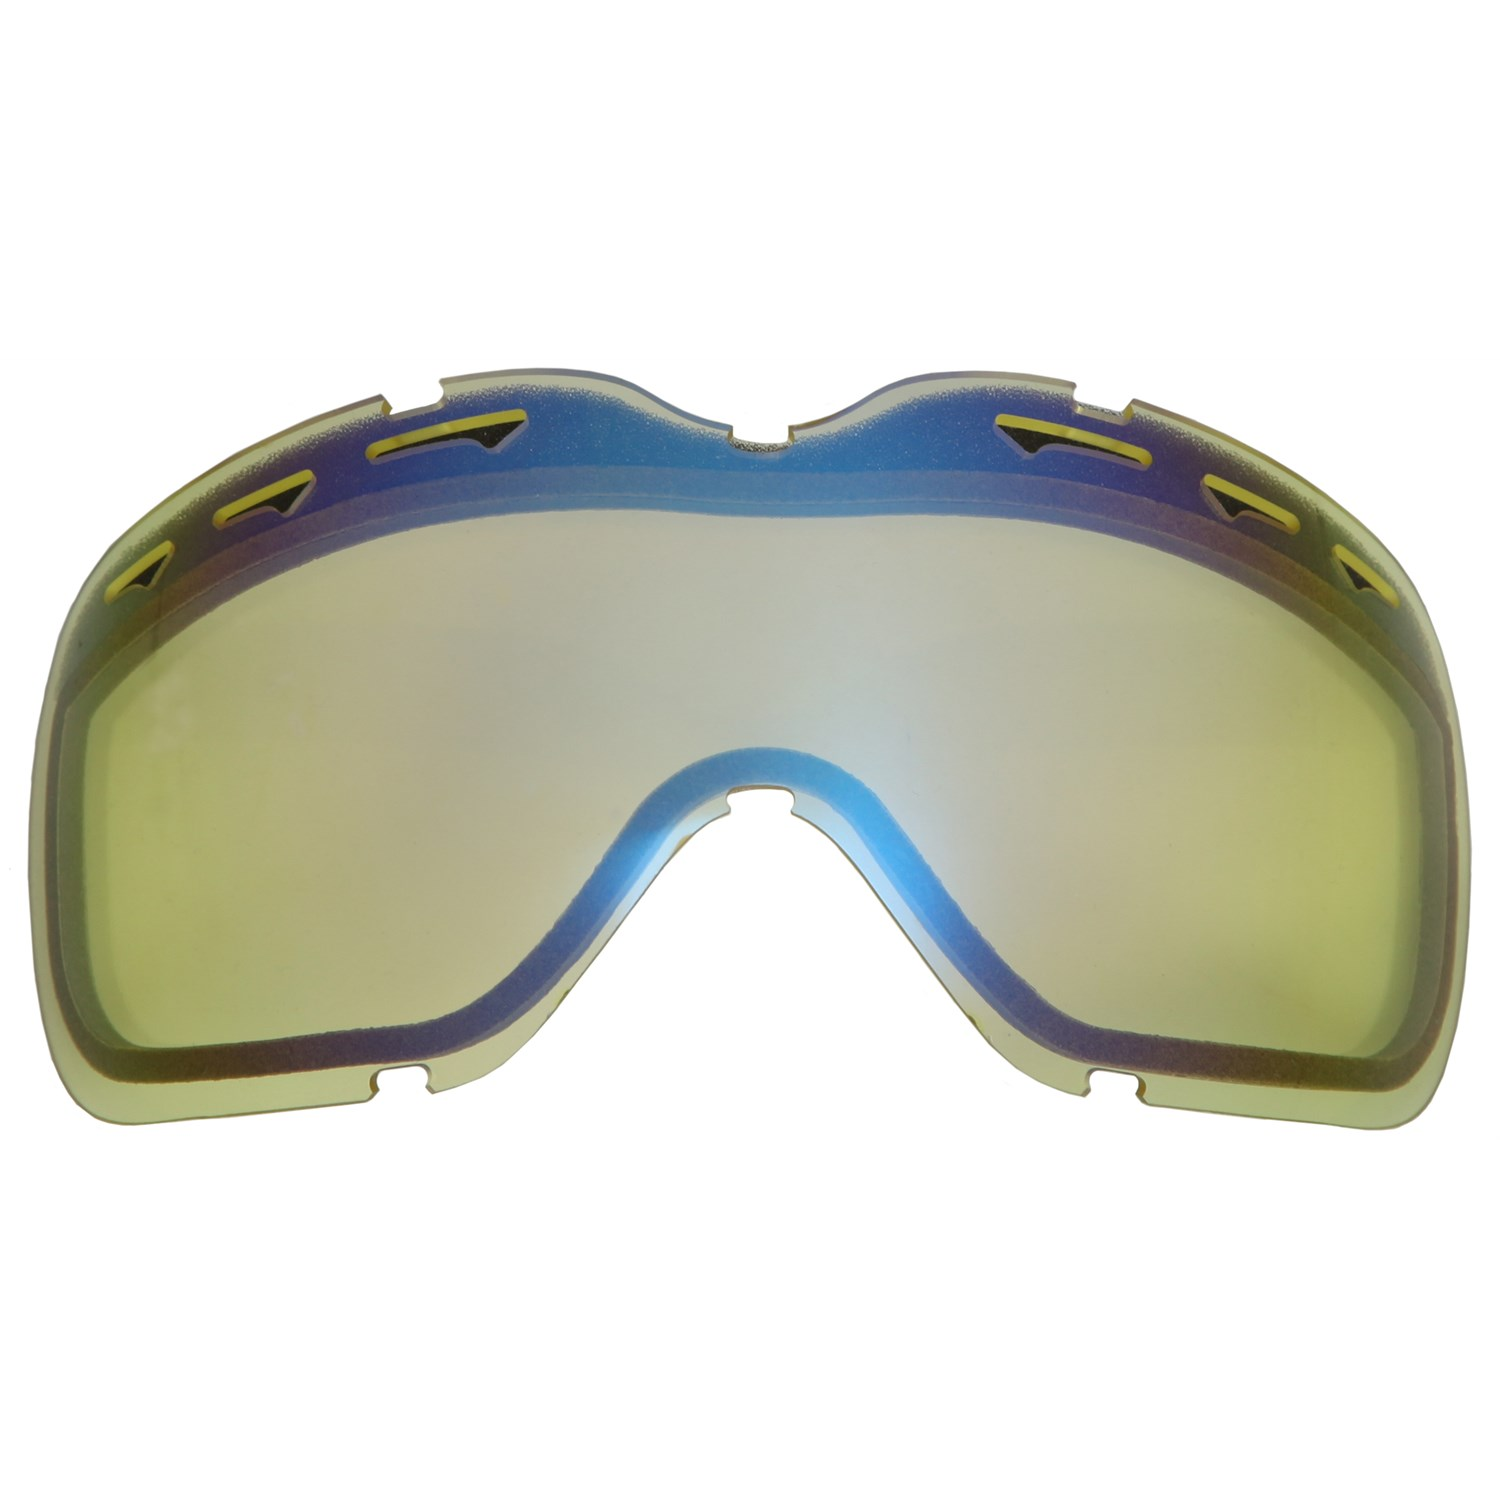 cleaning oakley goggles